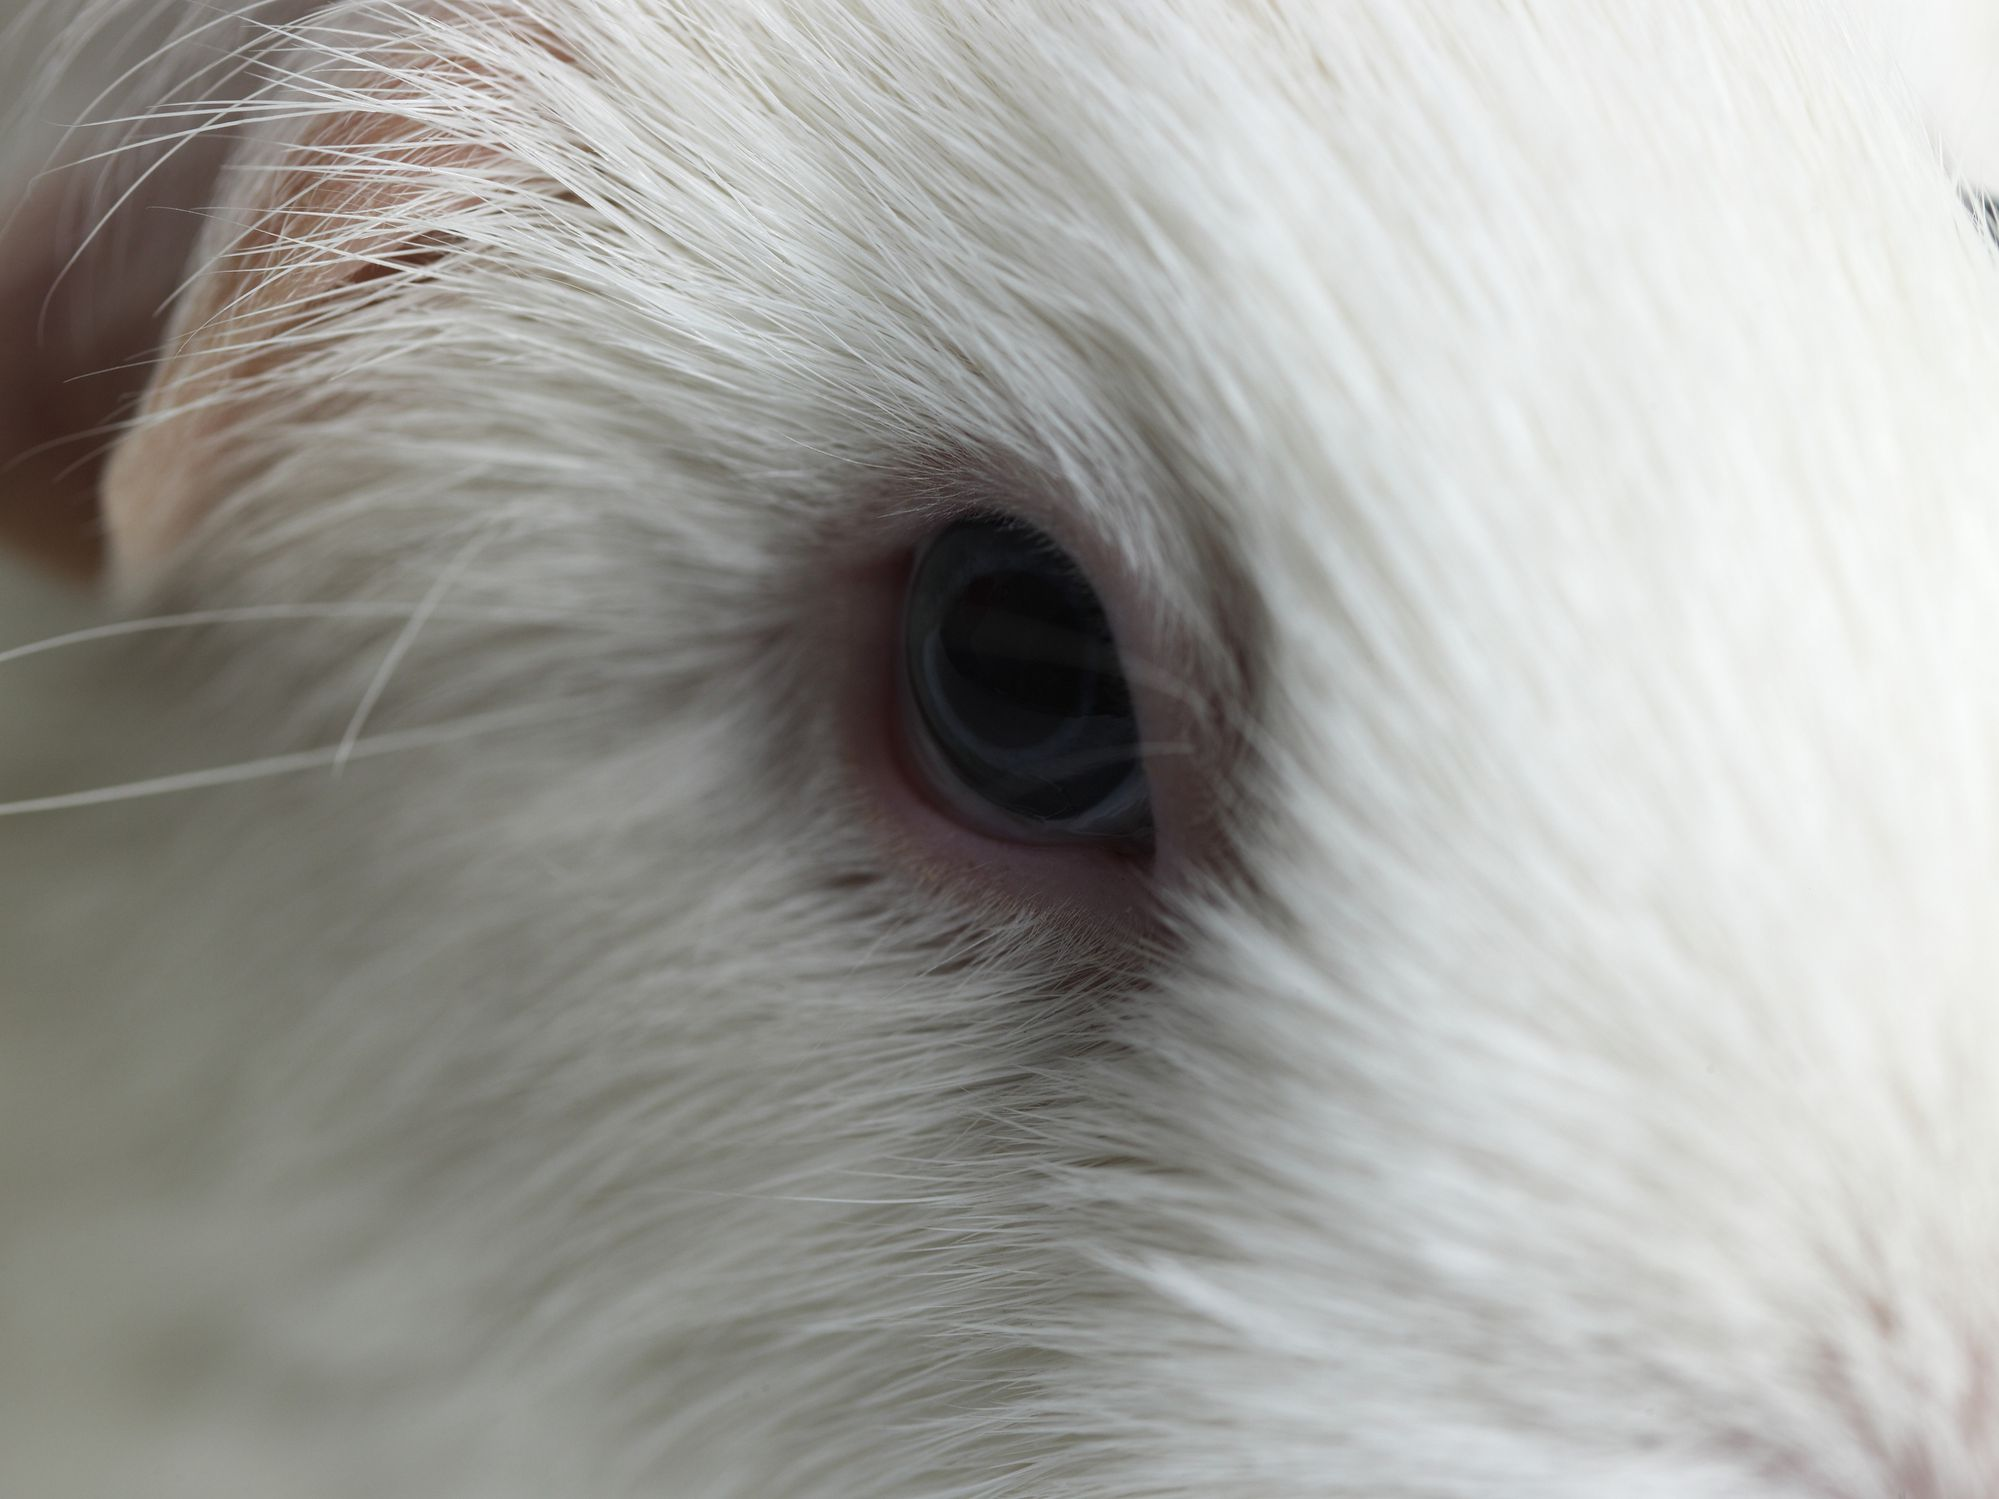 How to Treat Eye Infections and Problems in Guinea Pigs